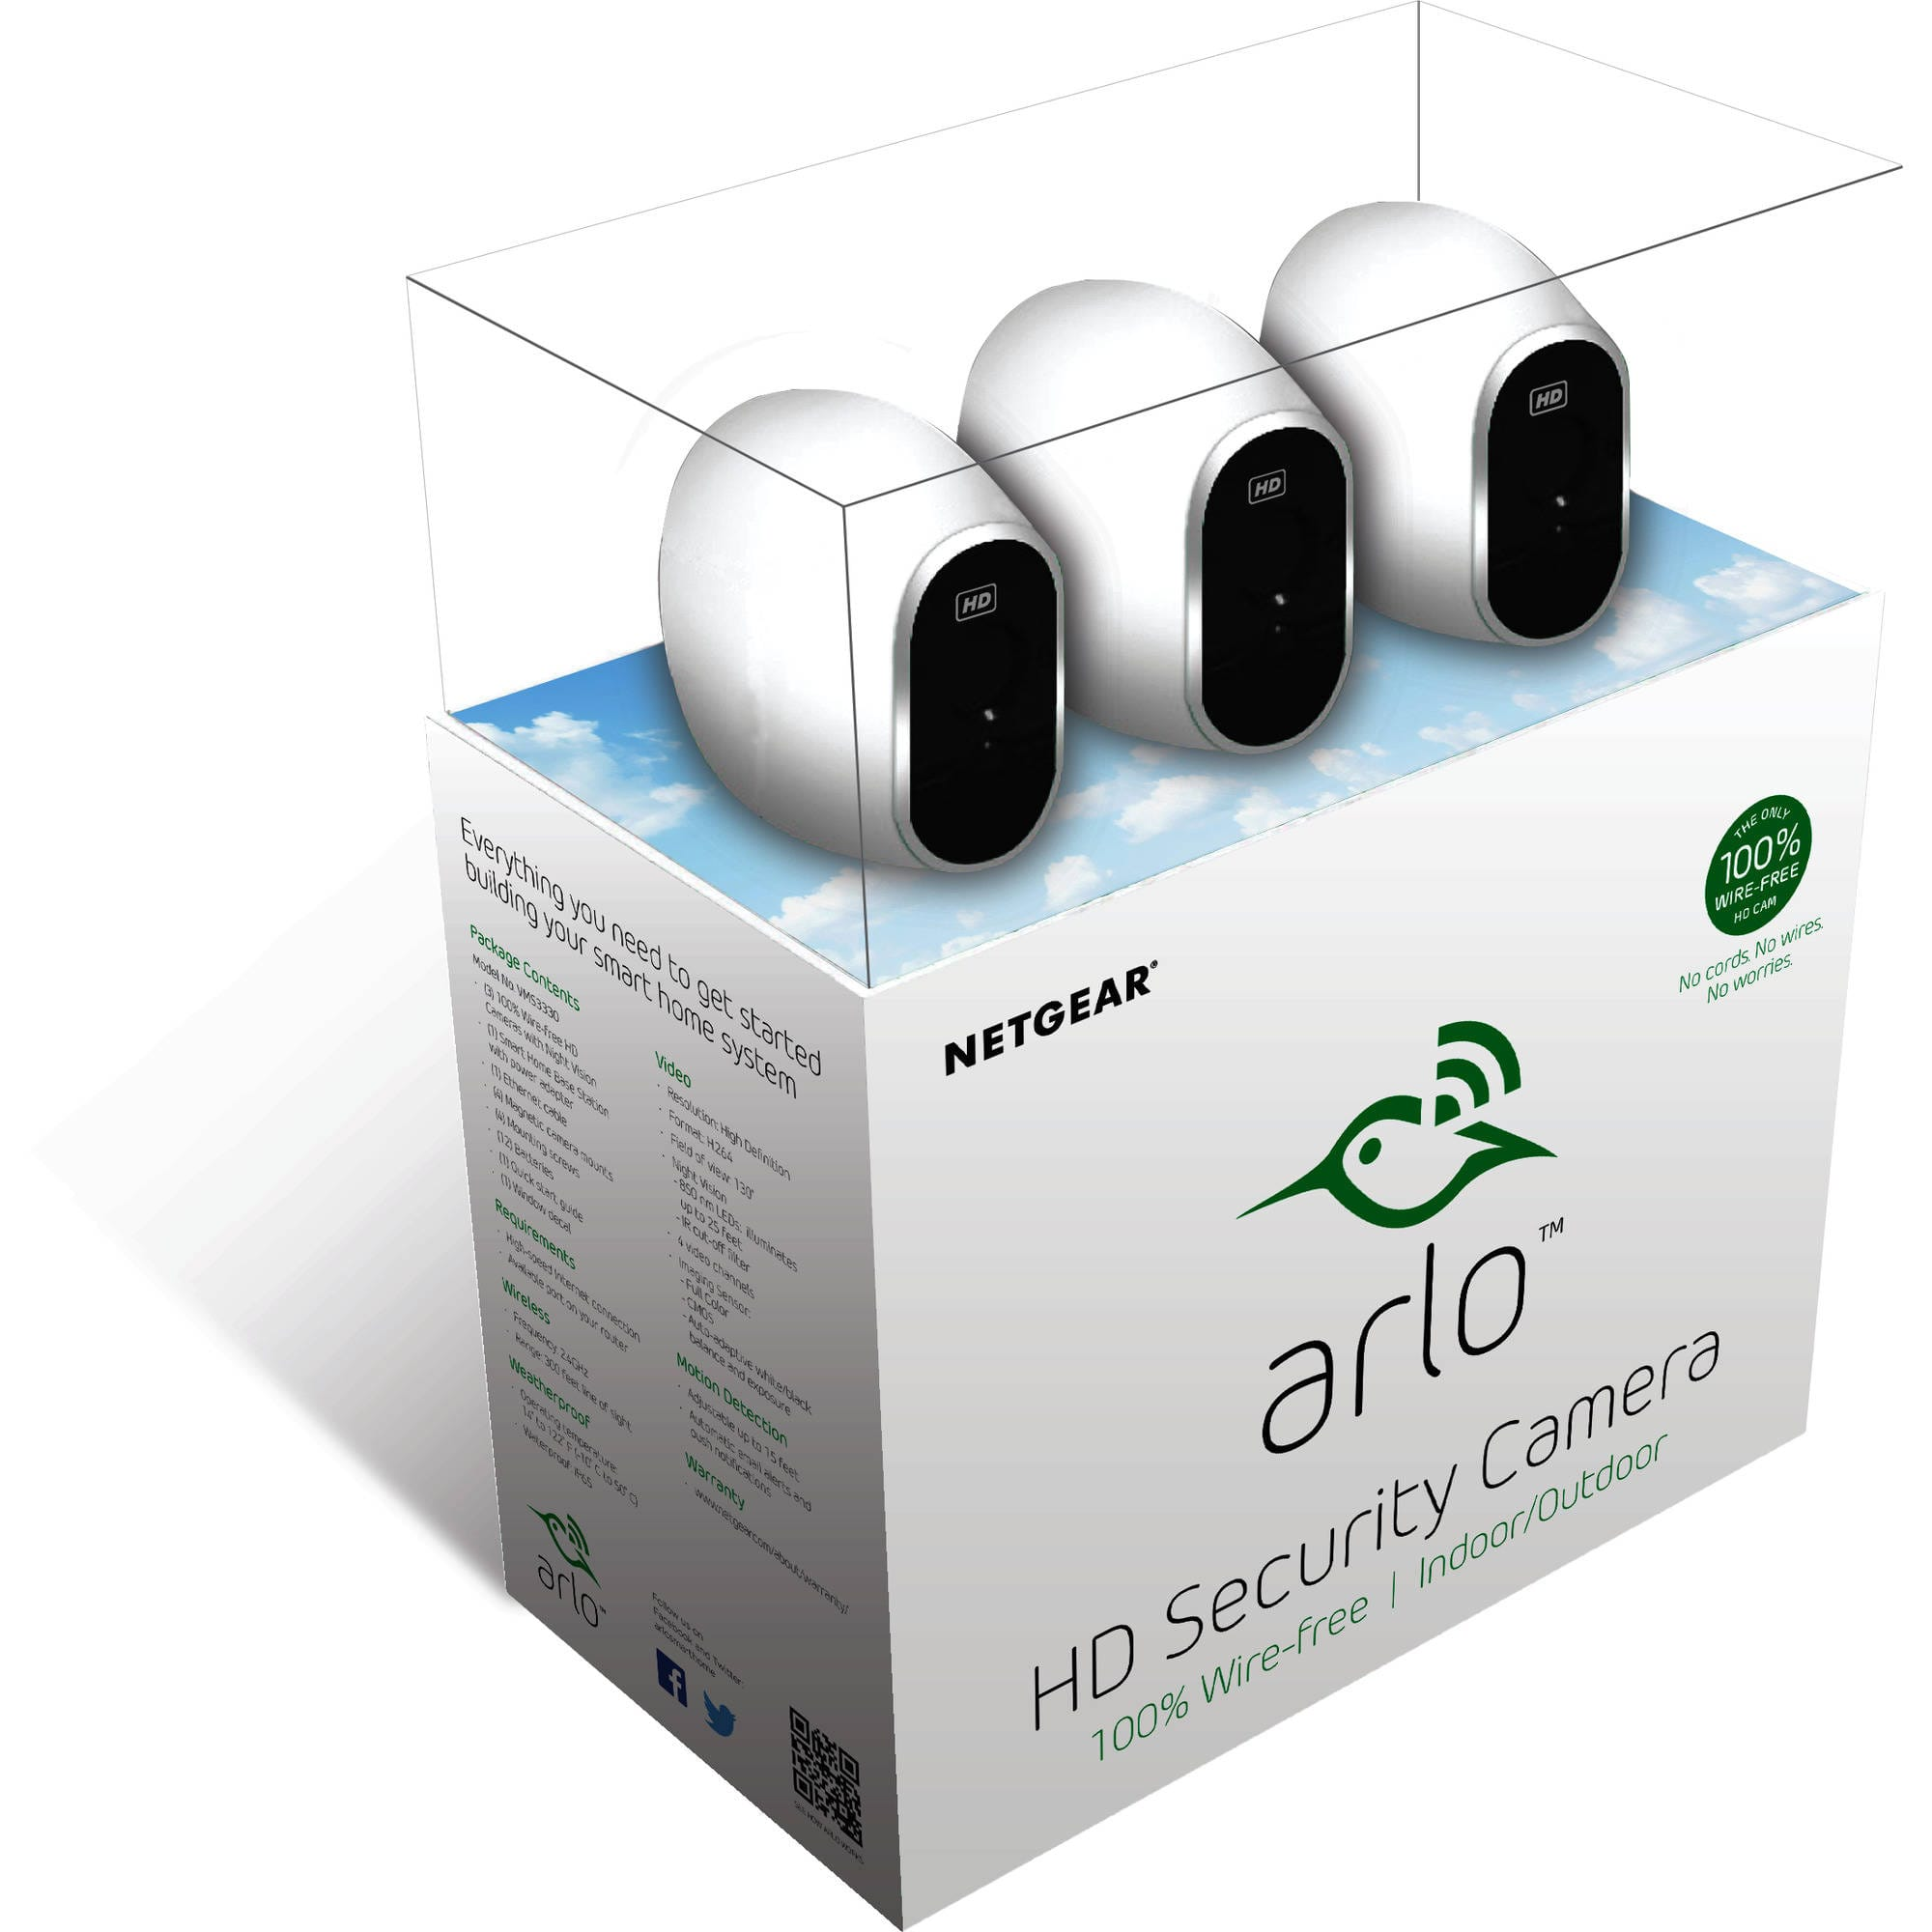 Arlo HD Security Camera 3 cams VMS3330 - $199.99 Walmart BM YMMV